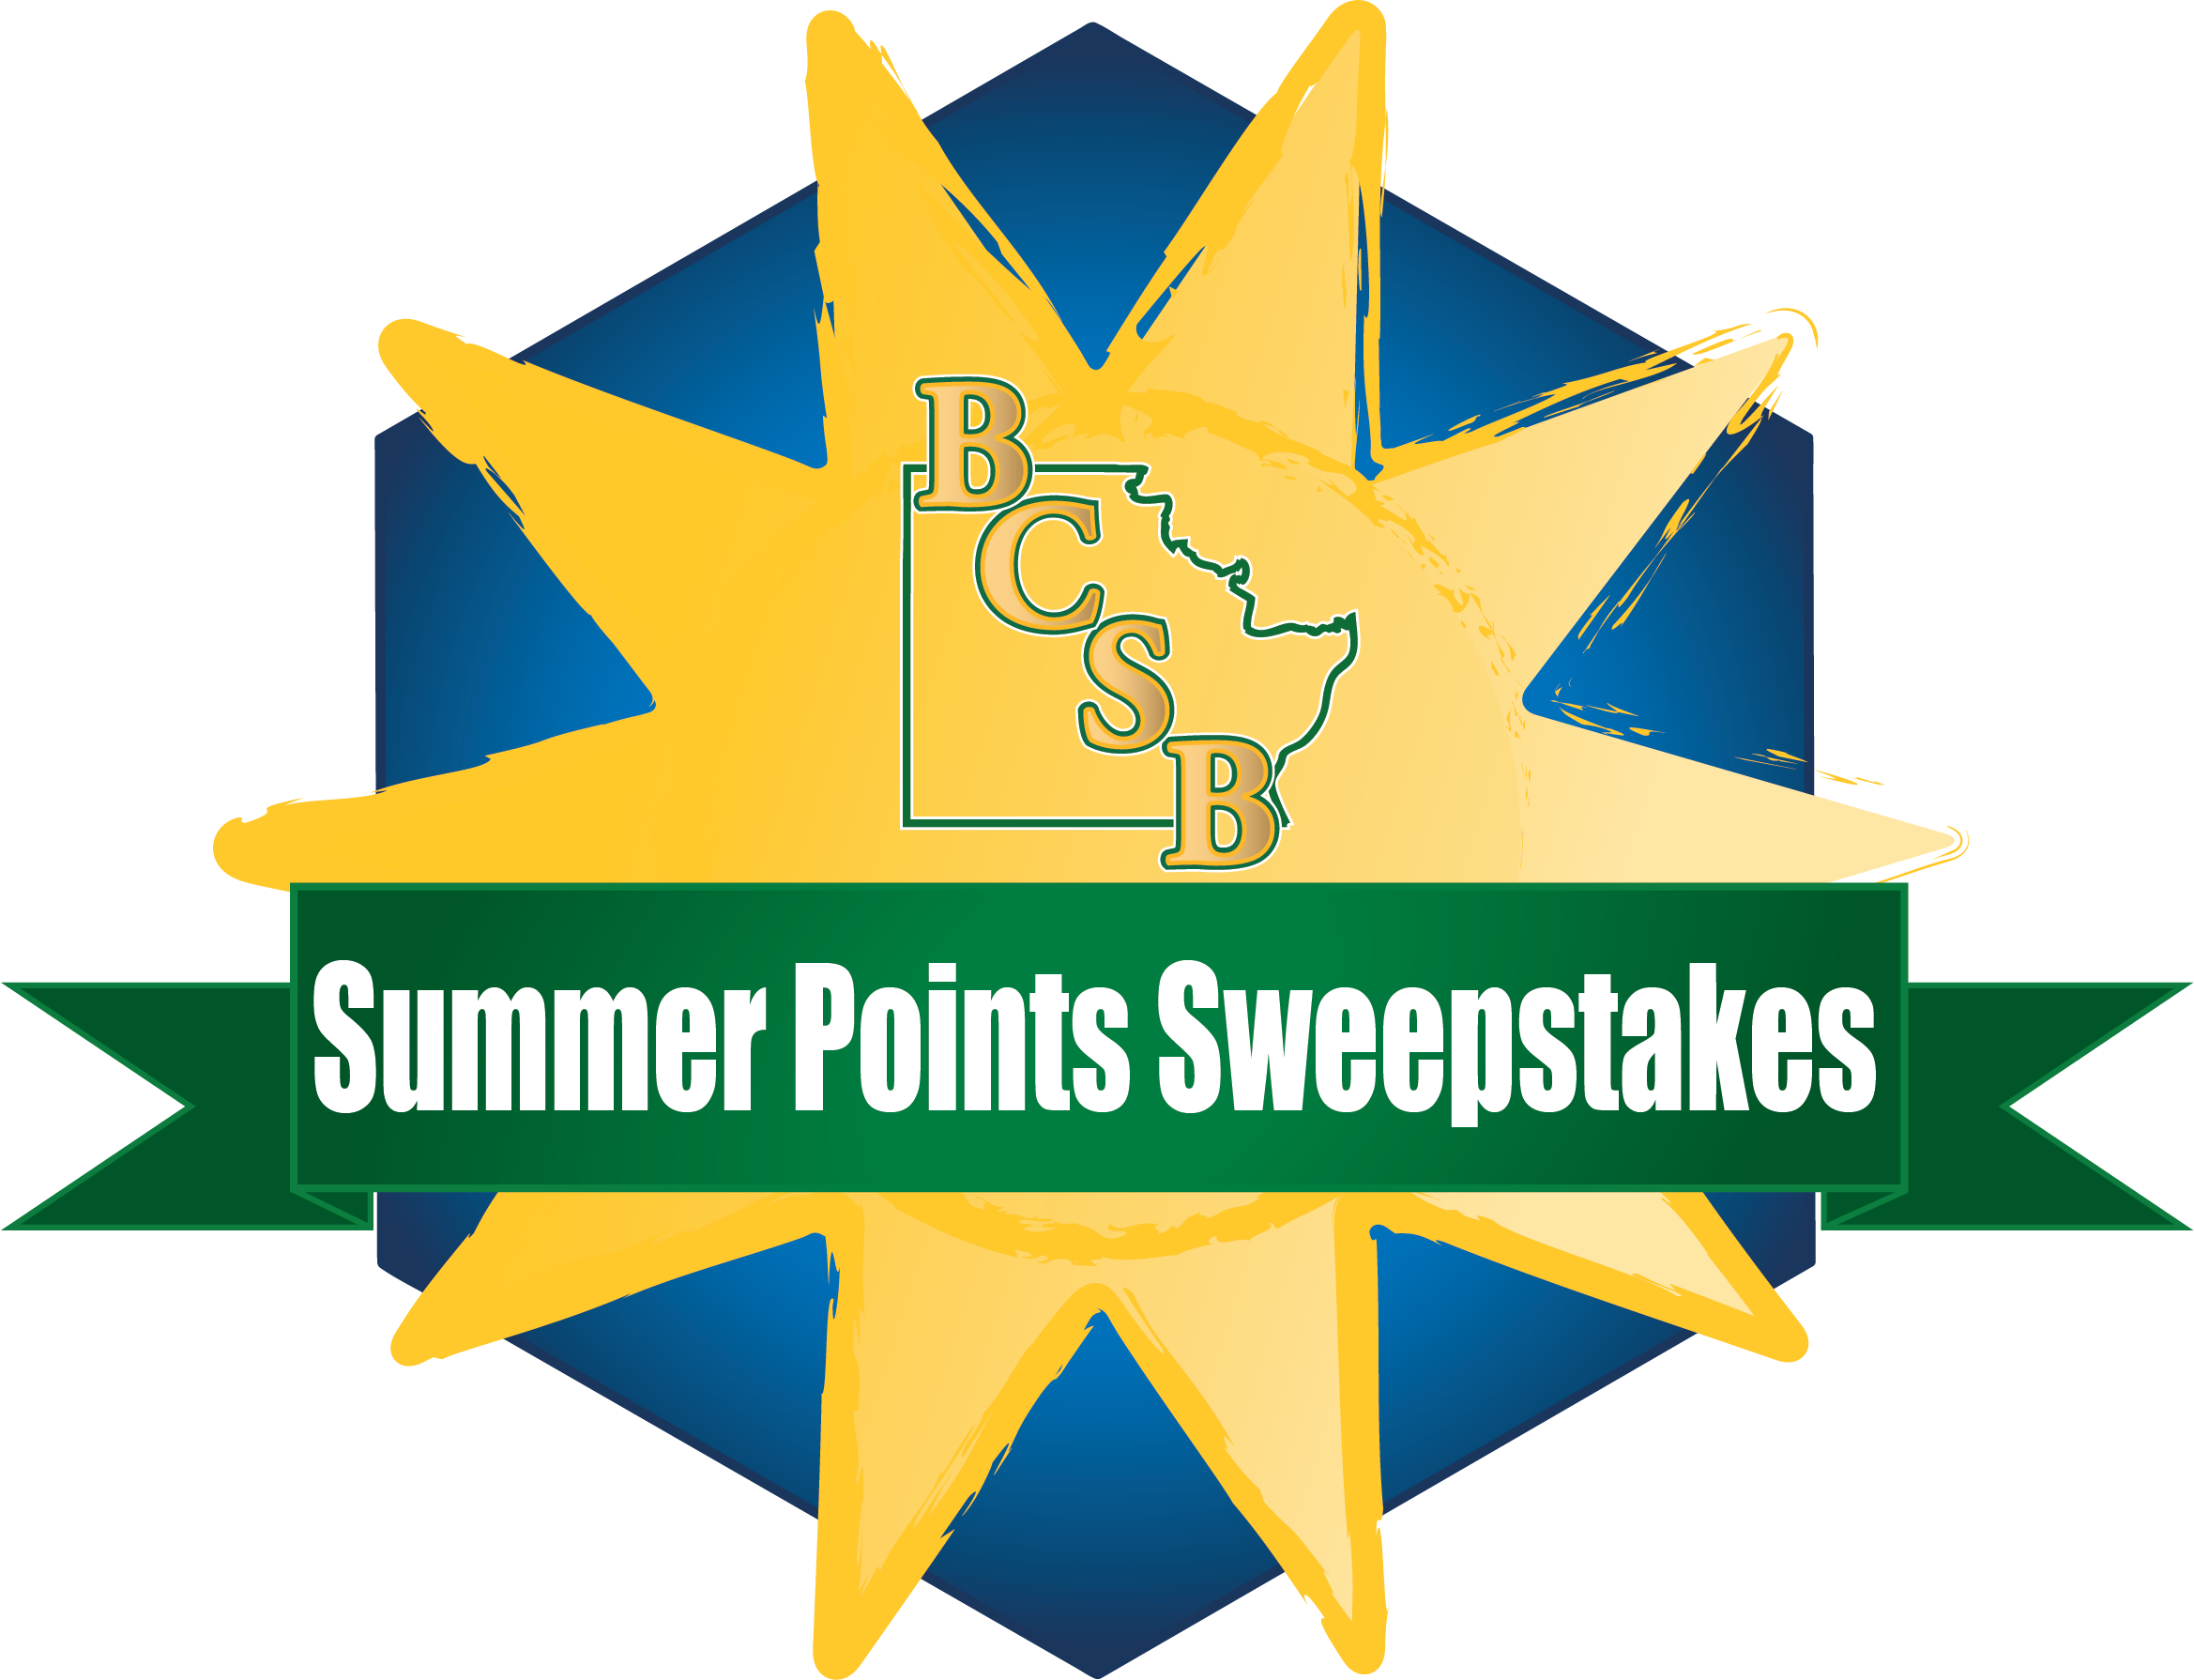 Summer Points Sweepstakes Brown County State Bank